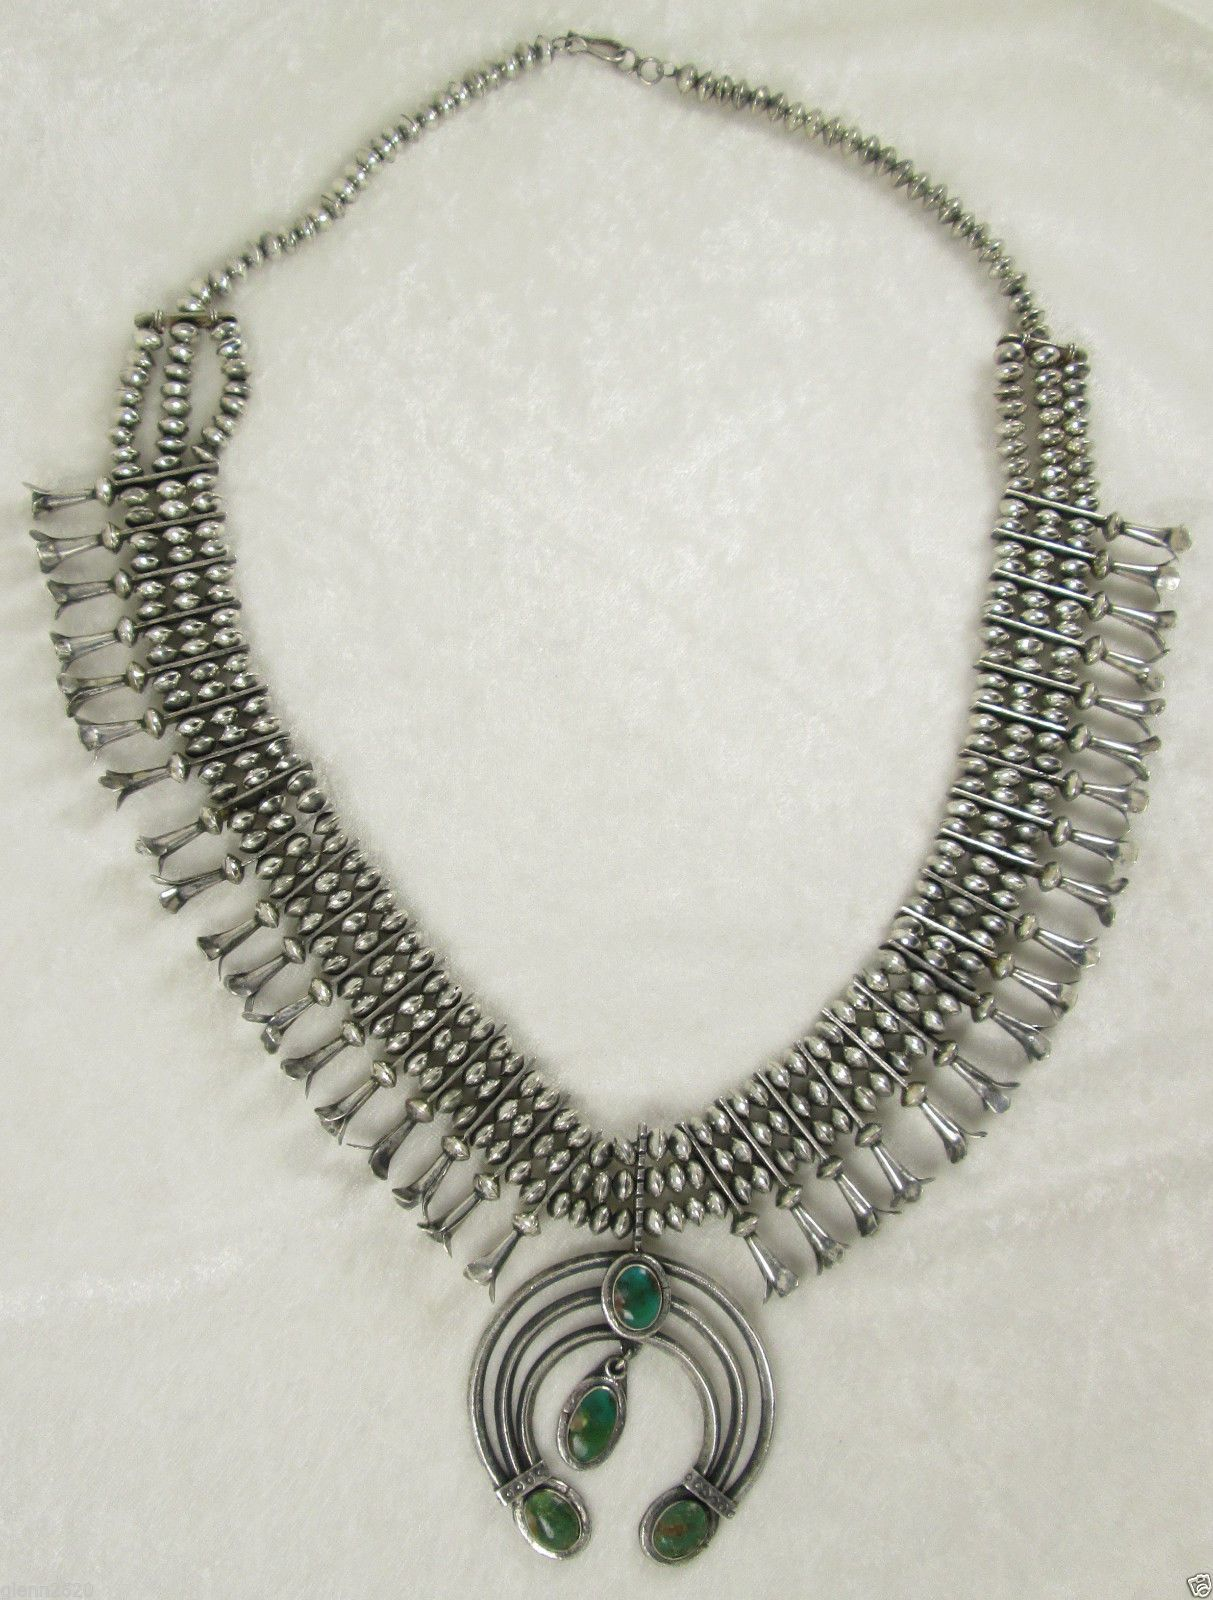 Antique Cochiti Pueblo Sterling Turquoise Squash Blossom Necklace 30in 325g 1930 | eBay